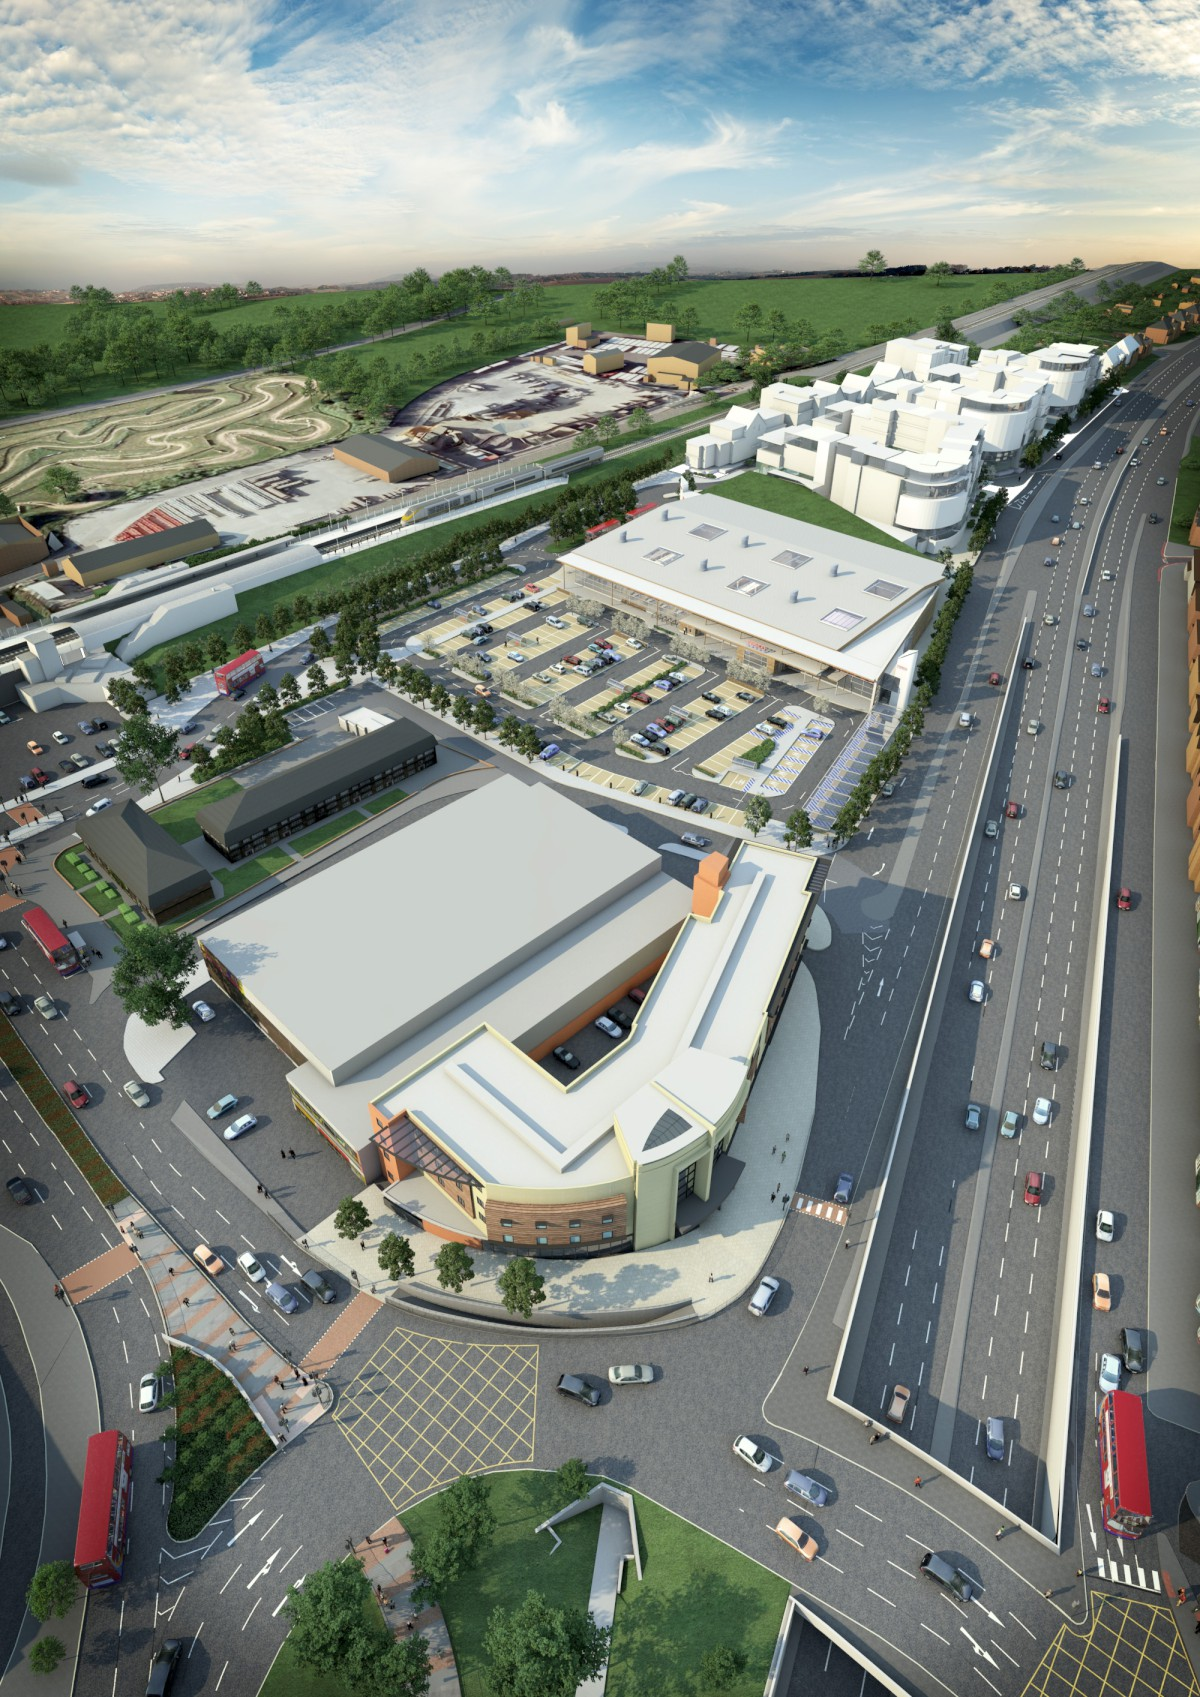 Plans: Tesco store, hotel and flats will be discussed by councillors